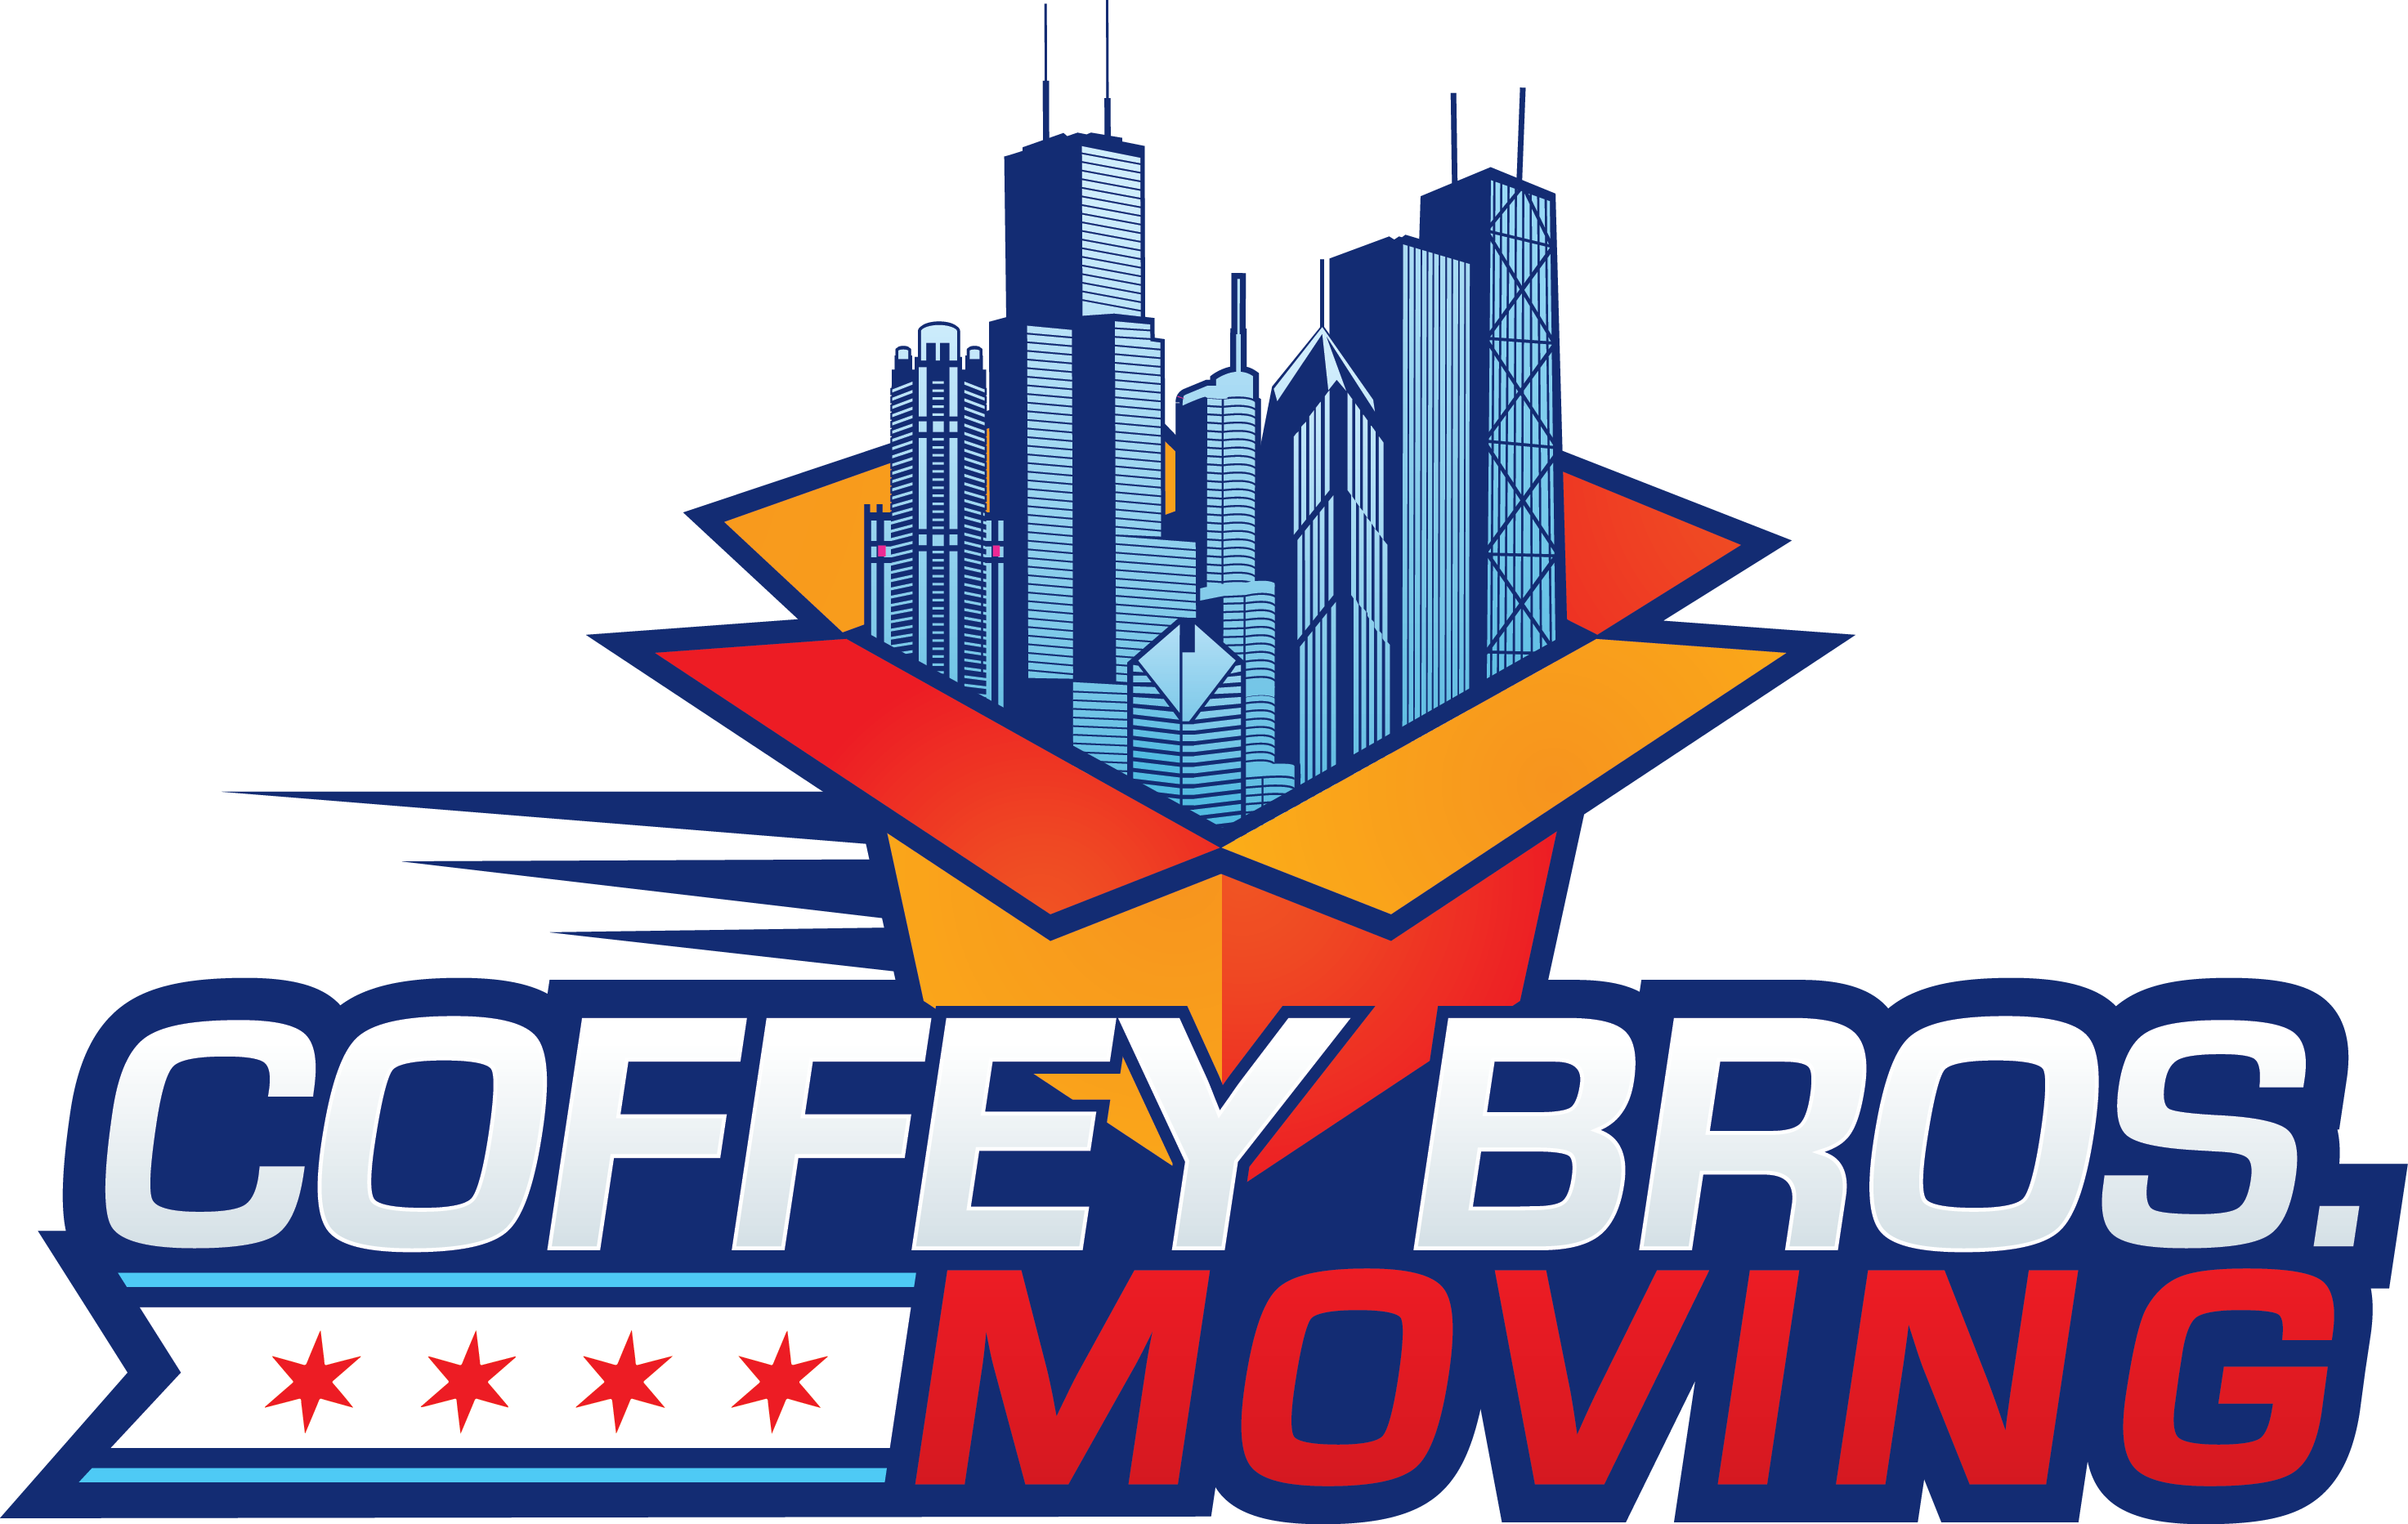 Coffey Bros Moving